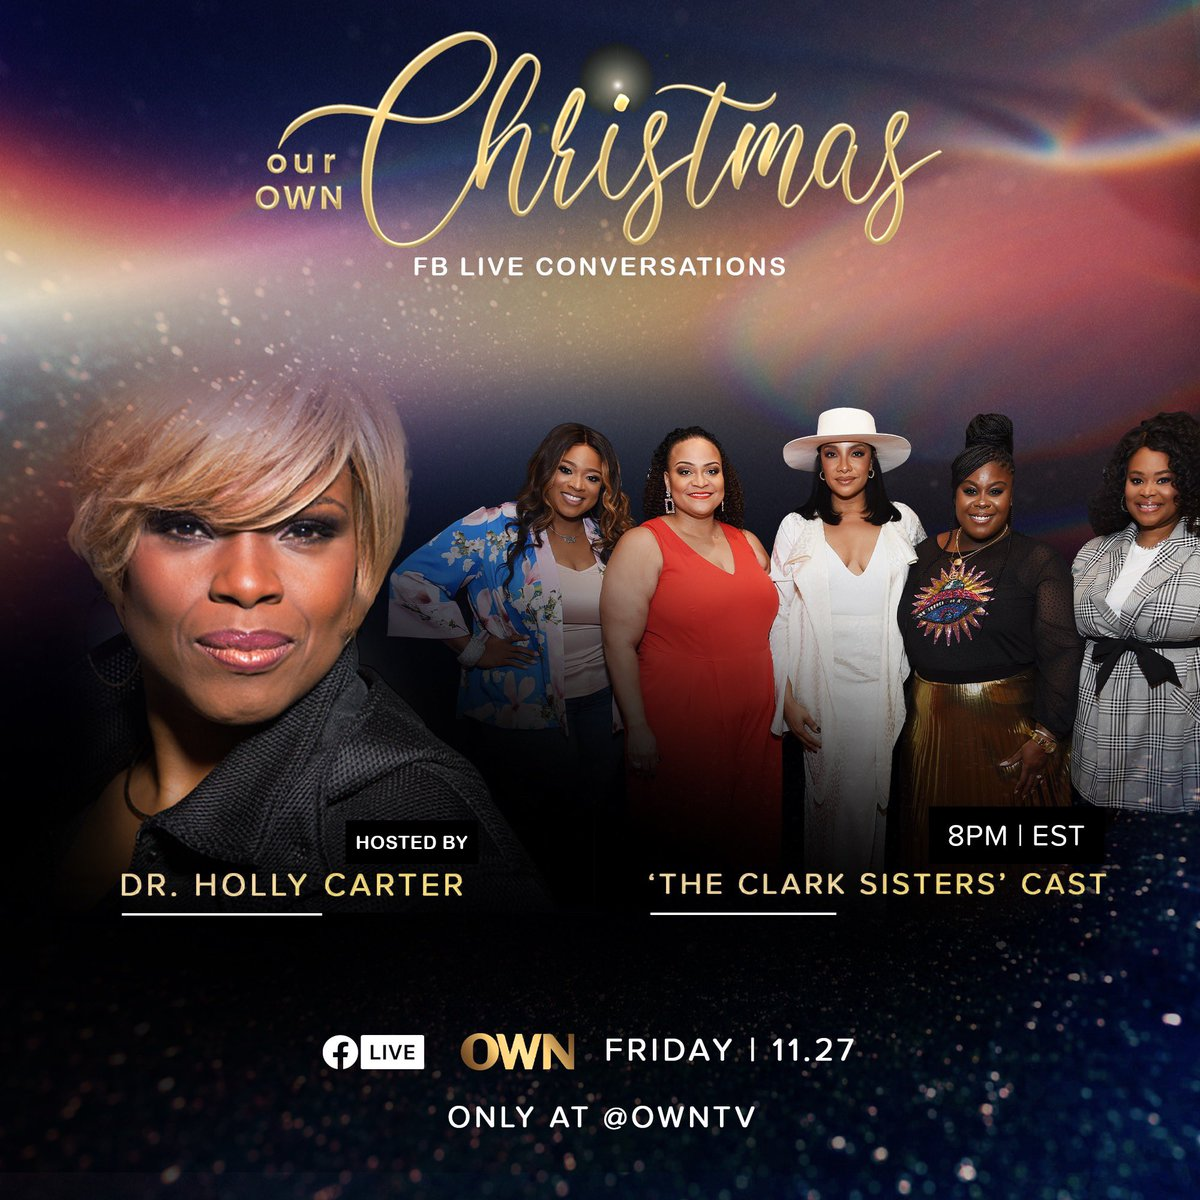 TONIGHT! @DrHollyCarter goes live with the cast of The Clark Sisters! Tune in at 8p ET on @OWNTV's Facebook live! https://t.co/lY3L29D9gx